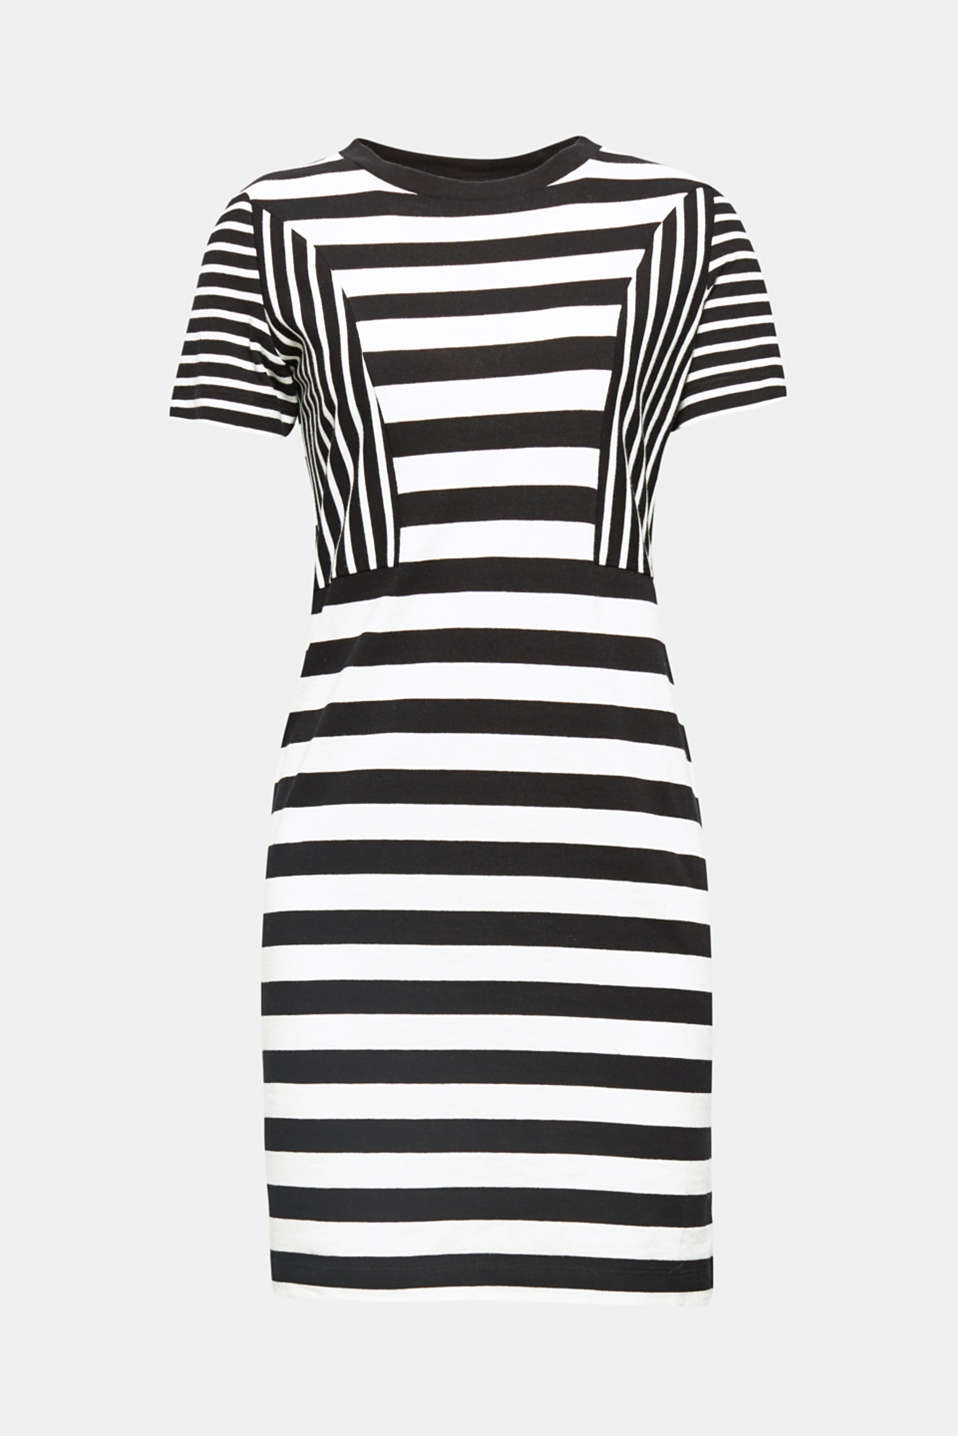 This fitted cotton knit dress with a varied striped pattern stands out thanks to its sophisticated look and high level of comfort.